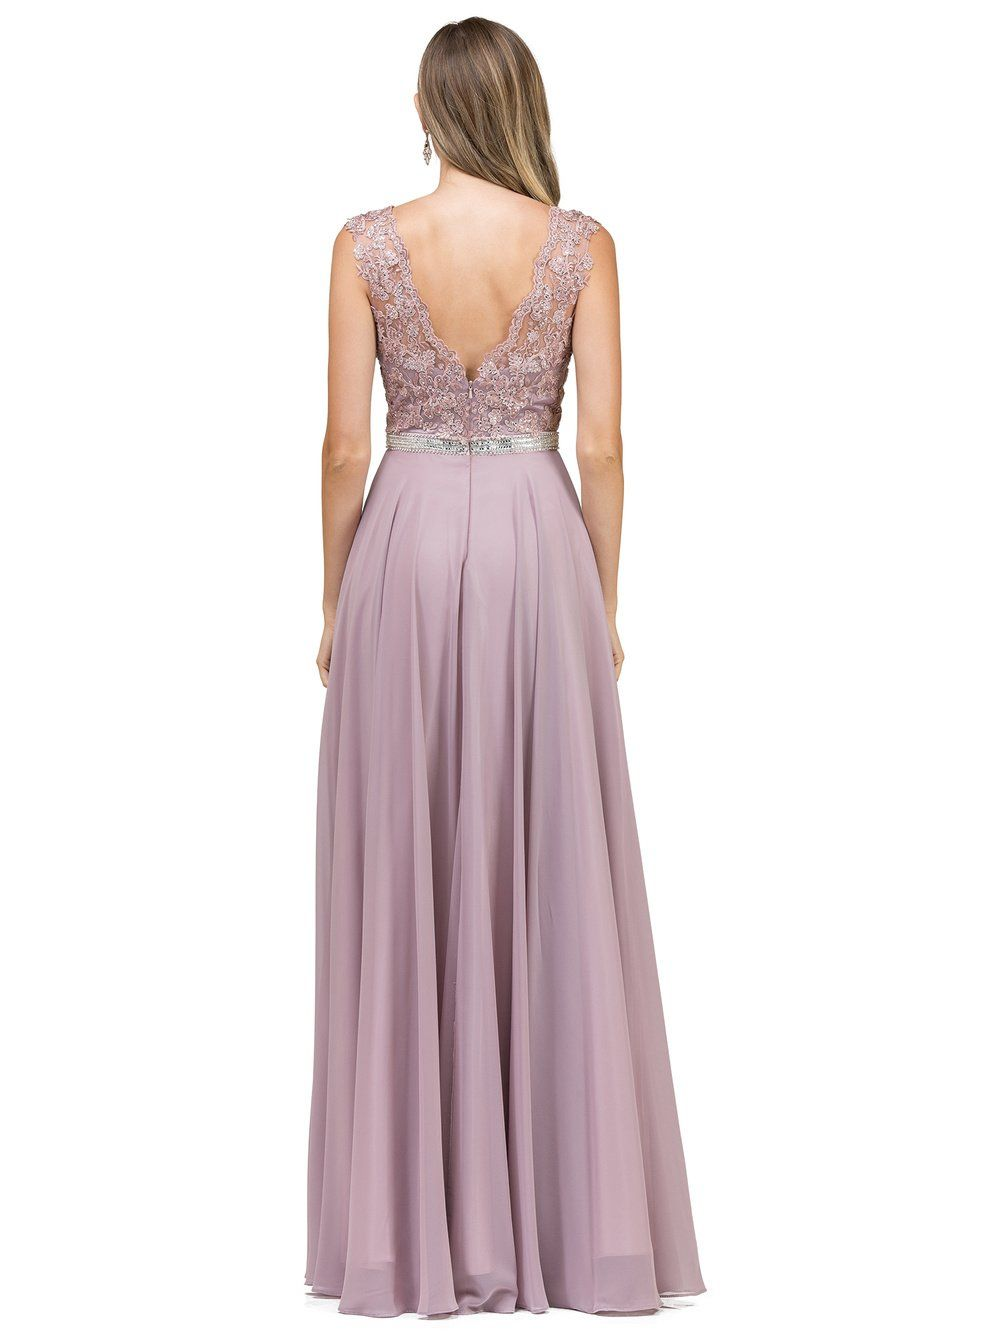 Dq pastel prom dress with illusionlace bodice u chiffon